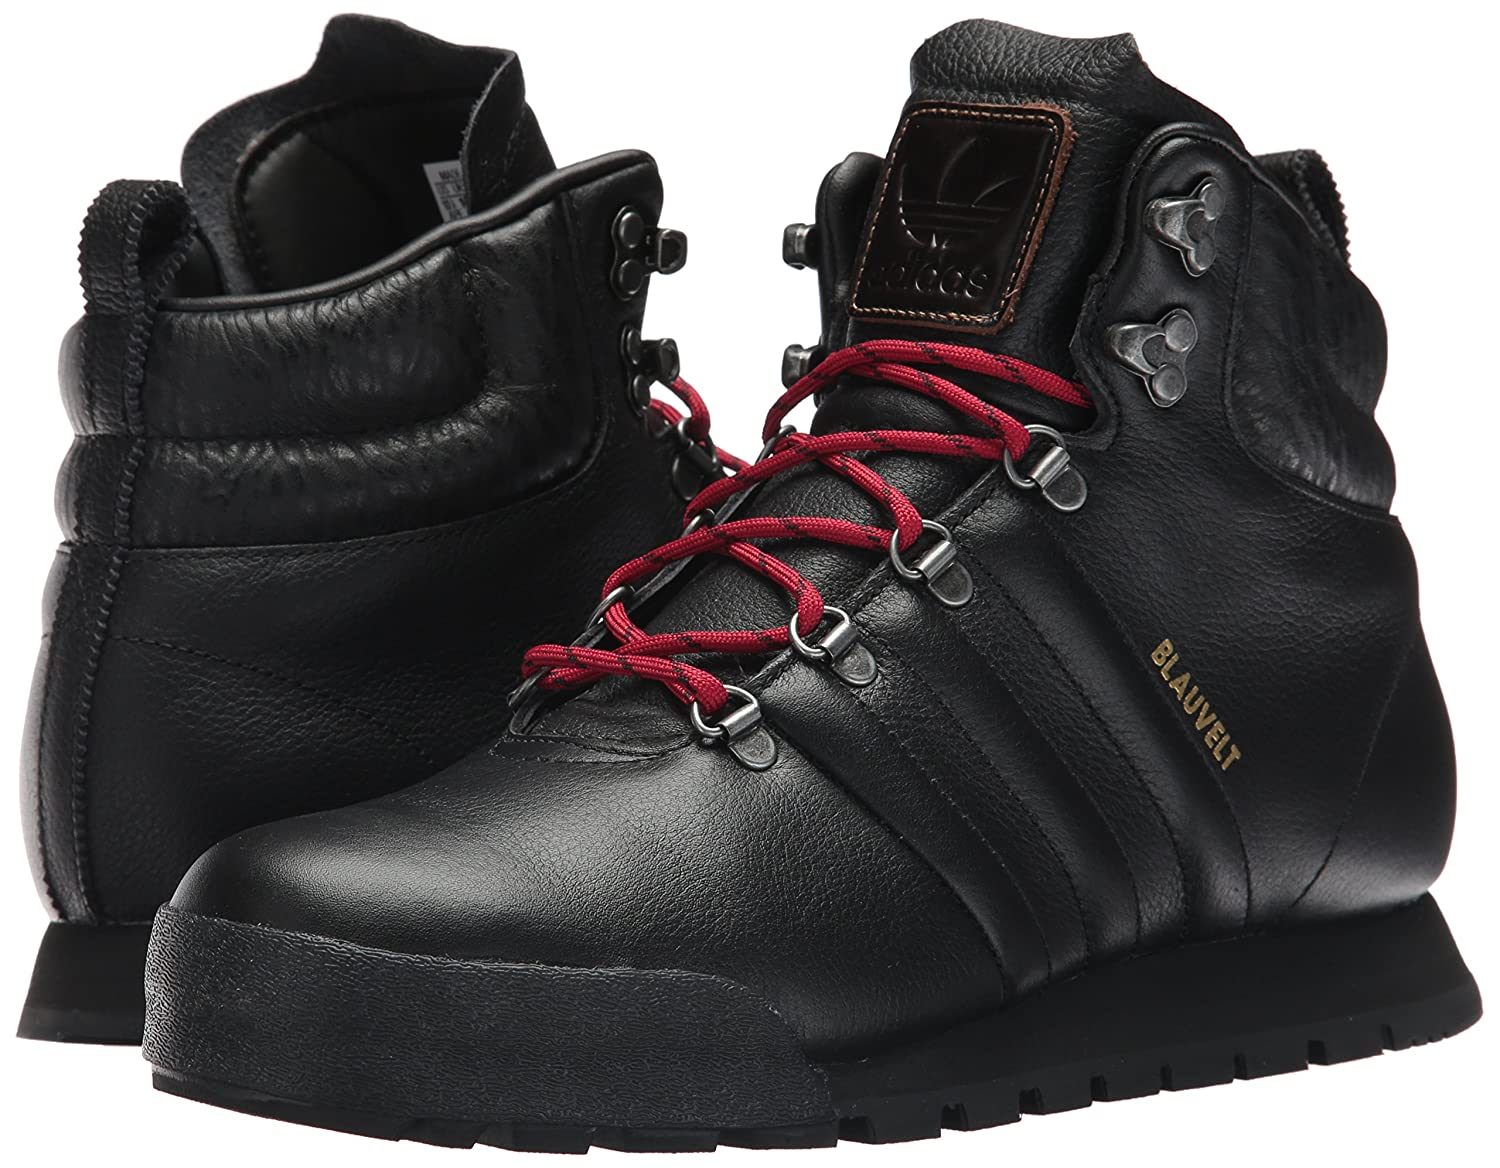 cheap for discount f2a15 dee96 Adidas Originals - Botas para Hombre de la Marca Jake Blauvelt, Negro, 8 M  US Amazon.com.mx Ropa, Zapatos y Accesorios